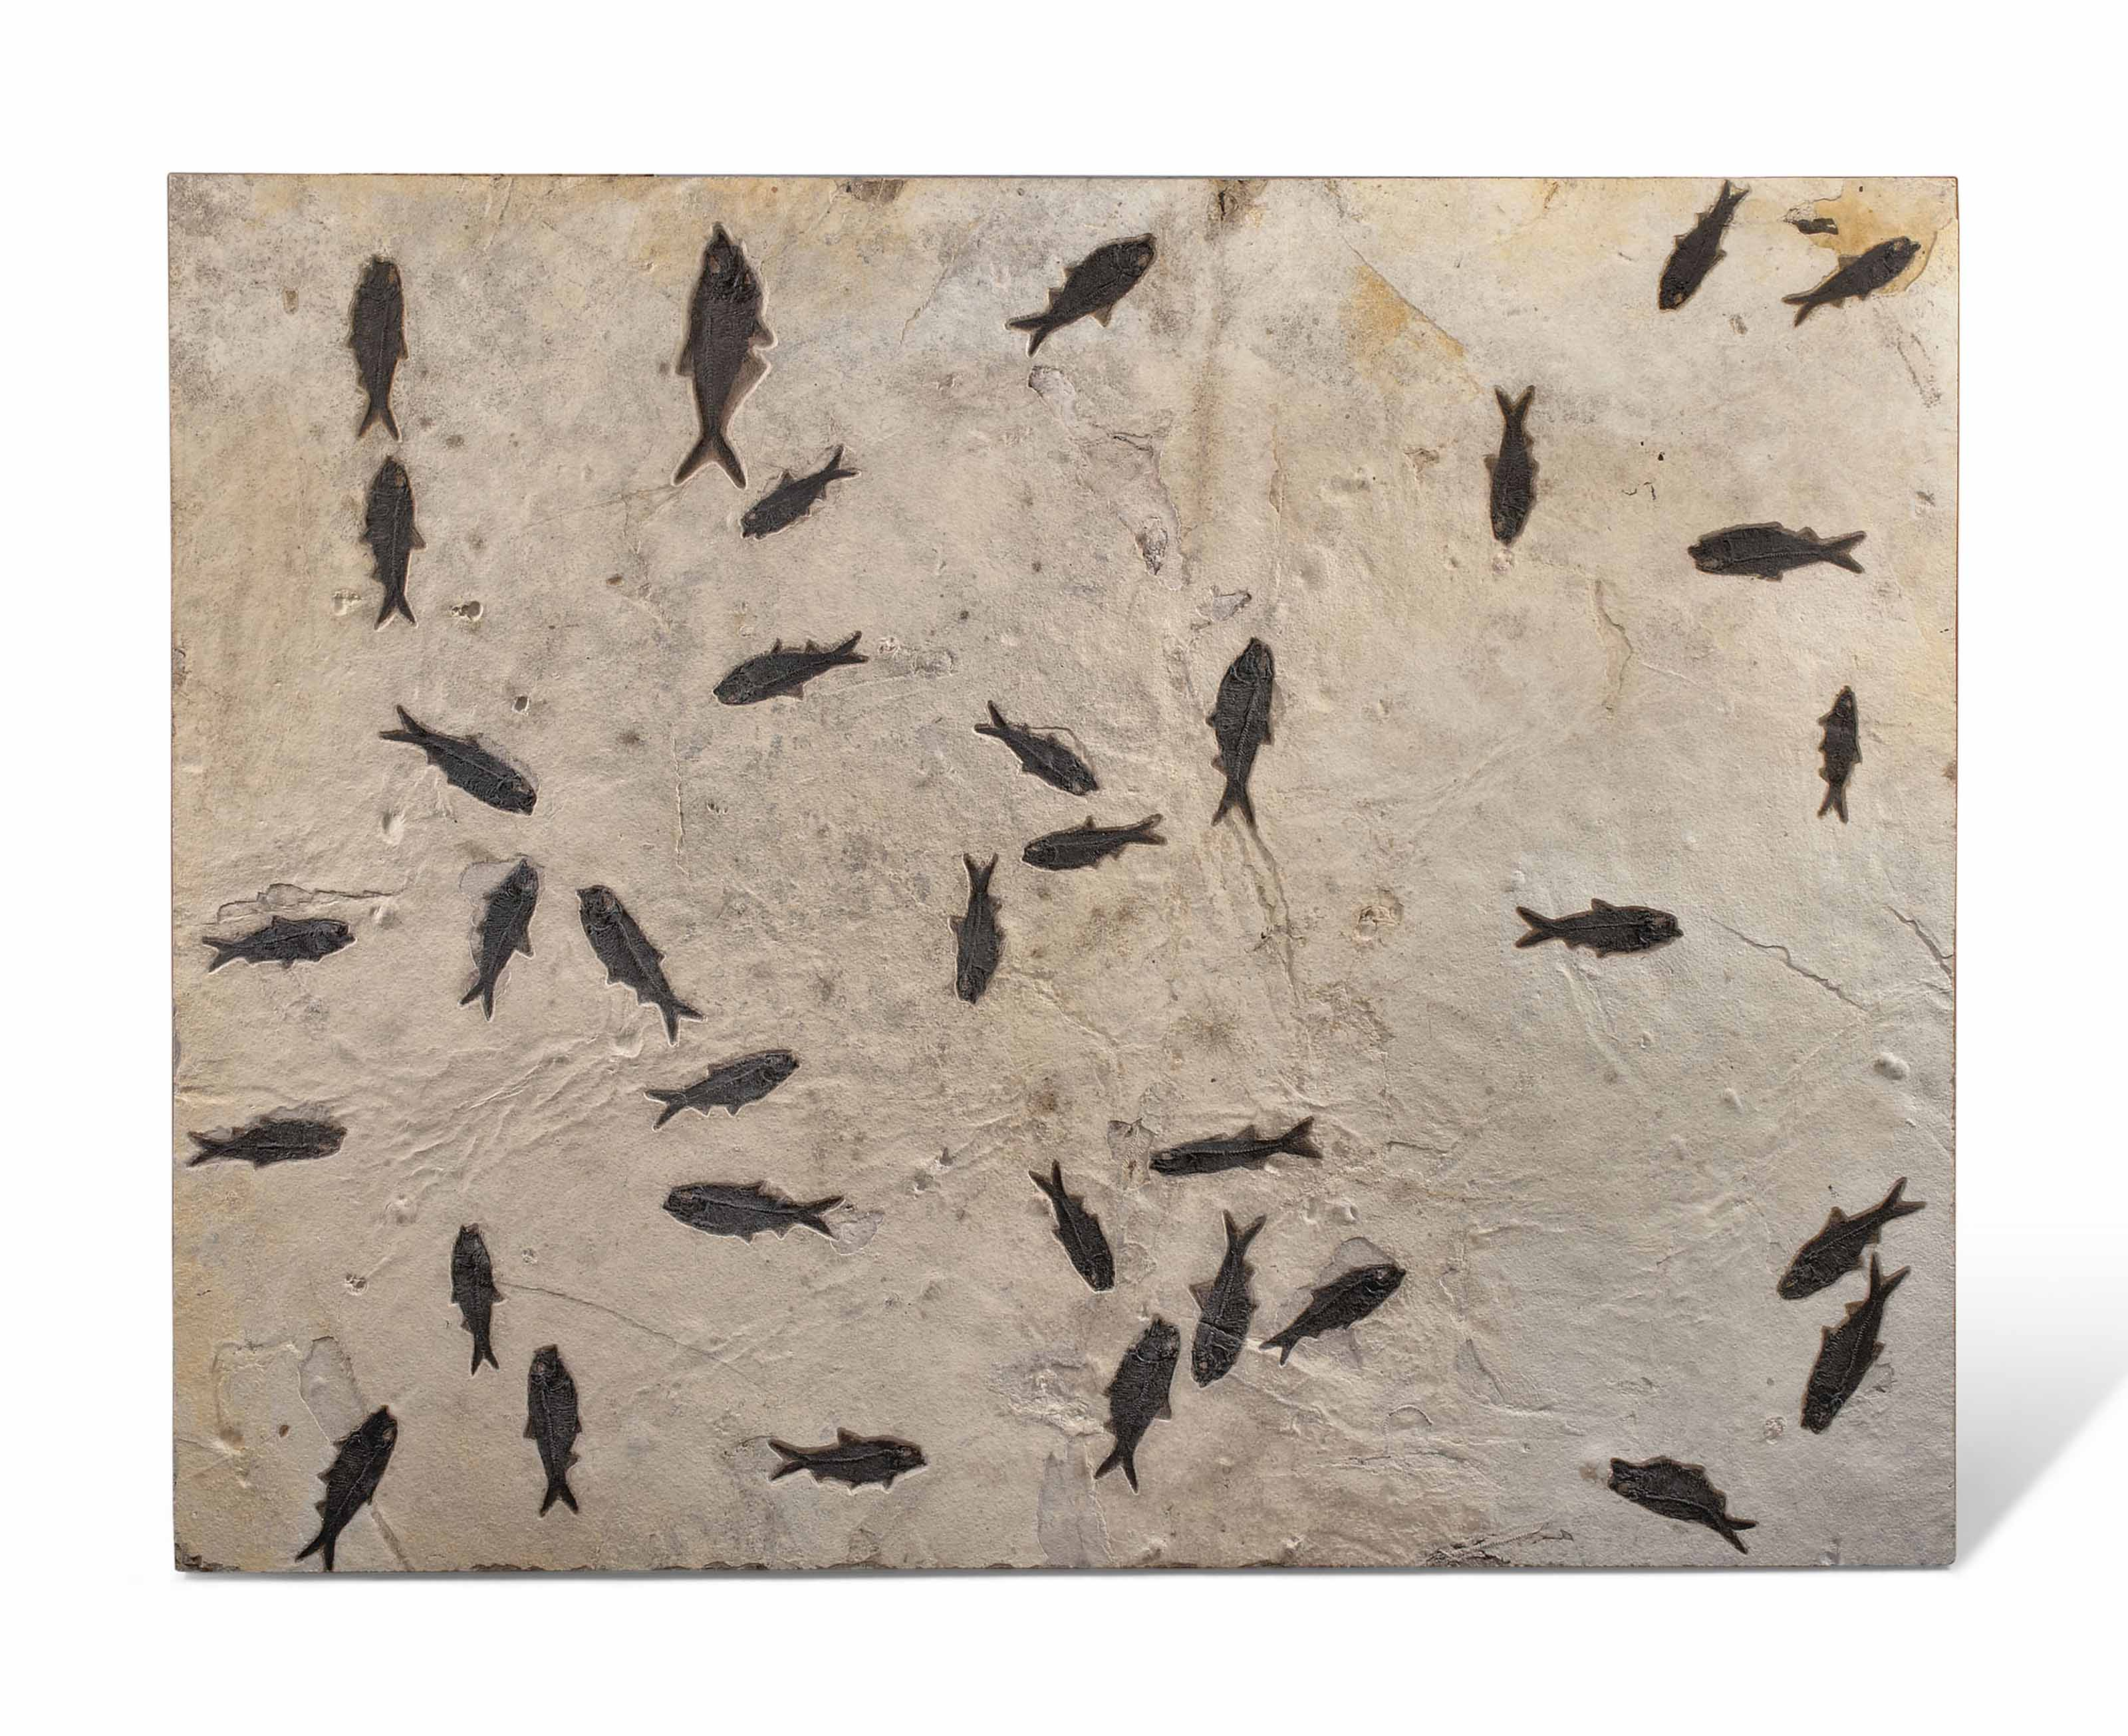 A LARGE FOSSIL FISH MORTALITY